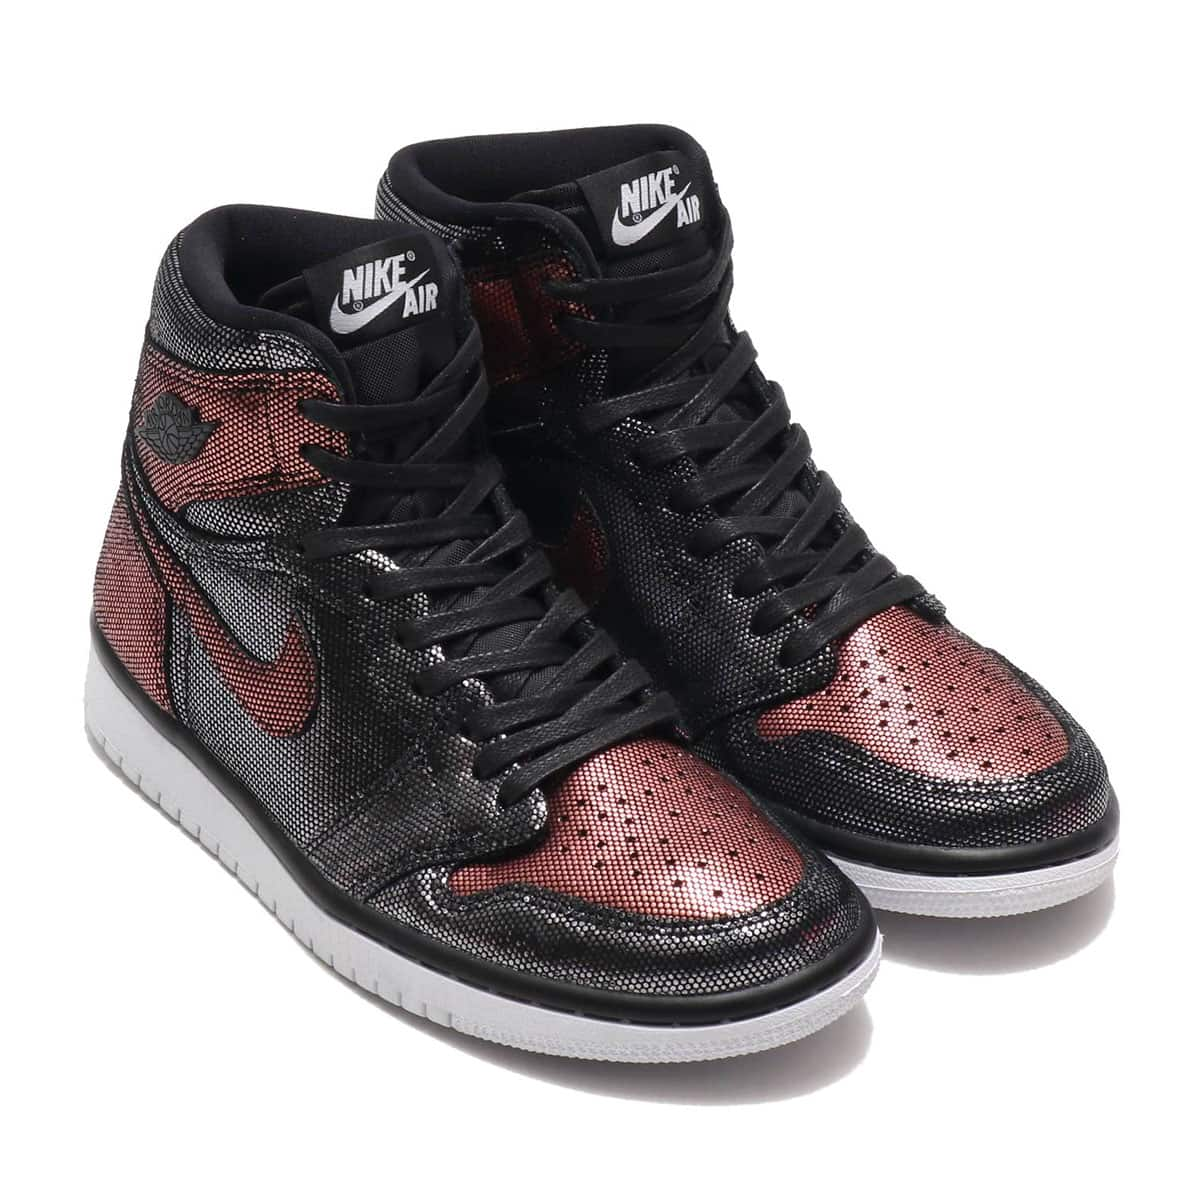 JORDAN BRAND W AIR JORDAN 1 HI OG FEARLESS BLACK/BLACK-MTLC ROSE GOLD-WHITE 19HO-S_photo_large